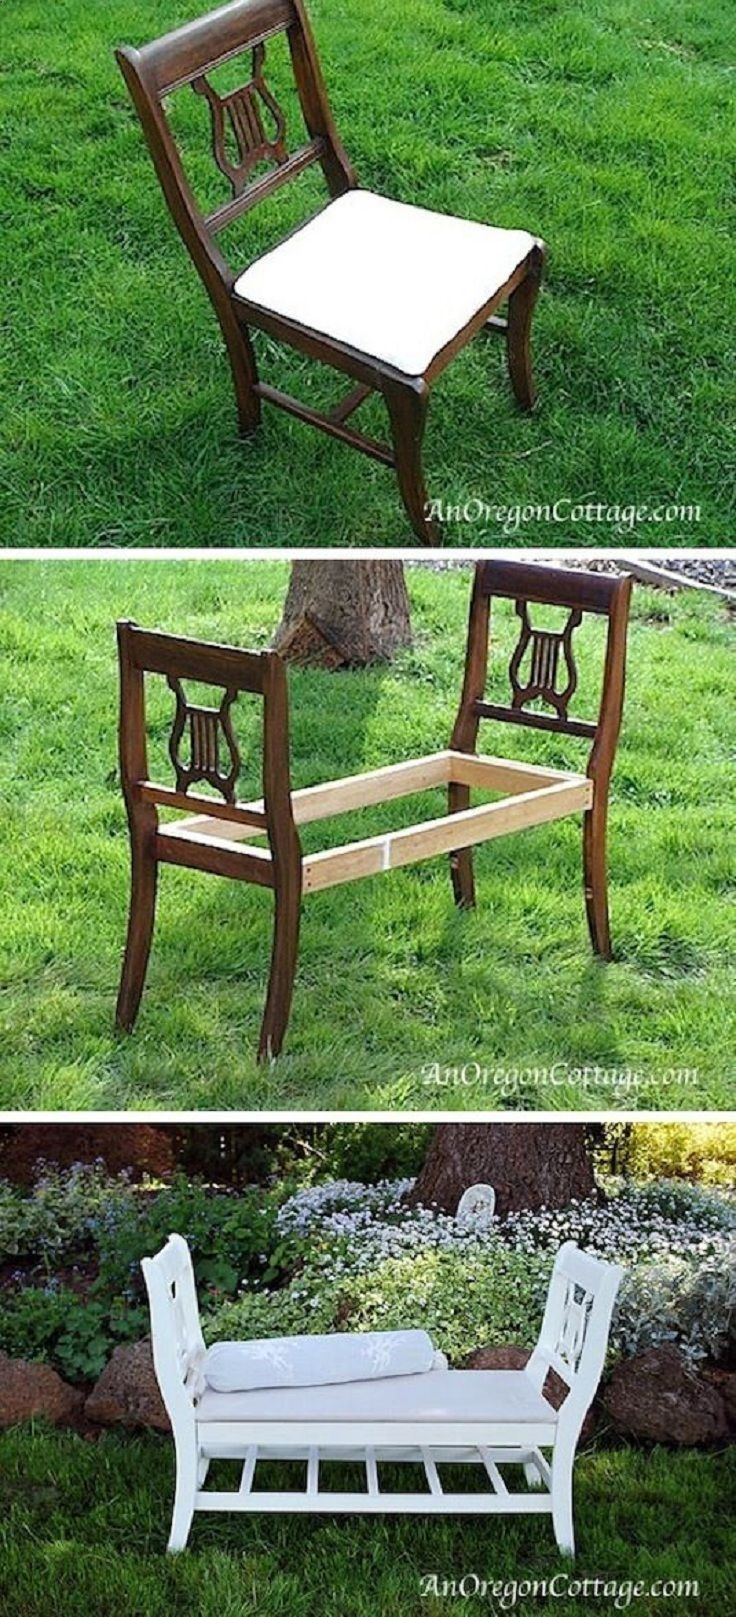 A French style bench